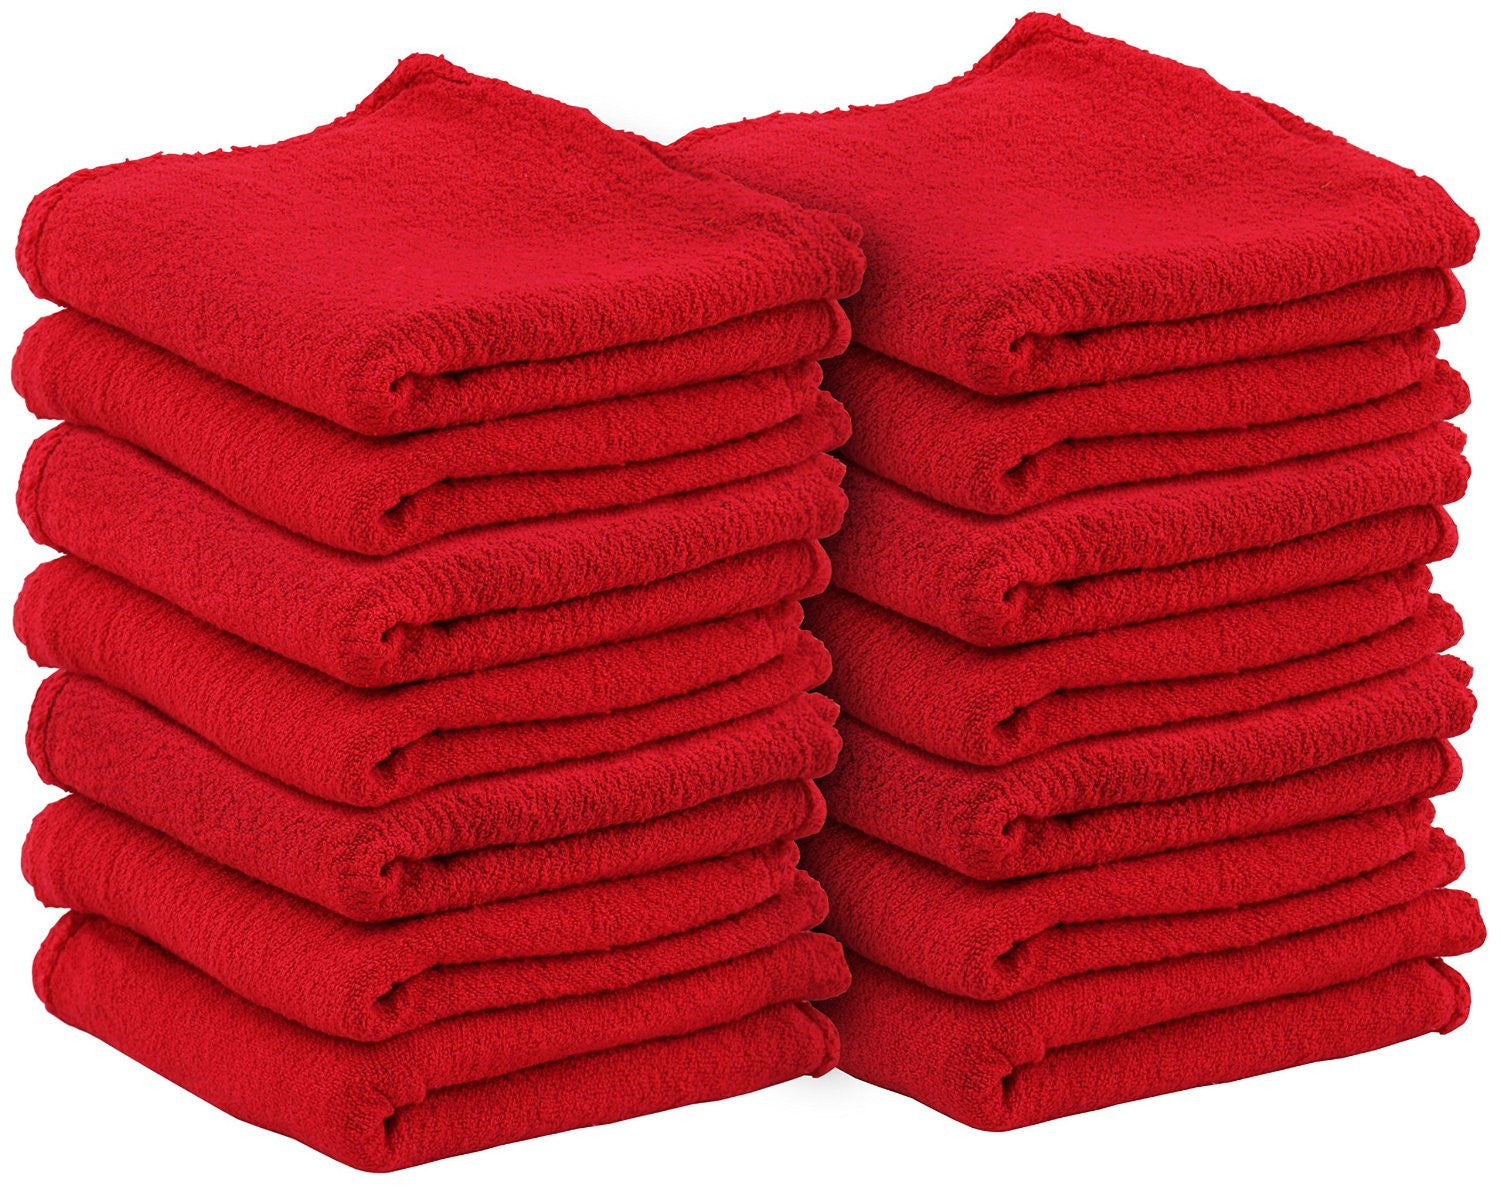 Auto Mechanic Shop Towels (Red-25 Pack)